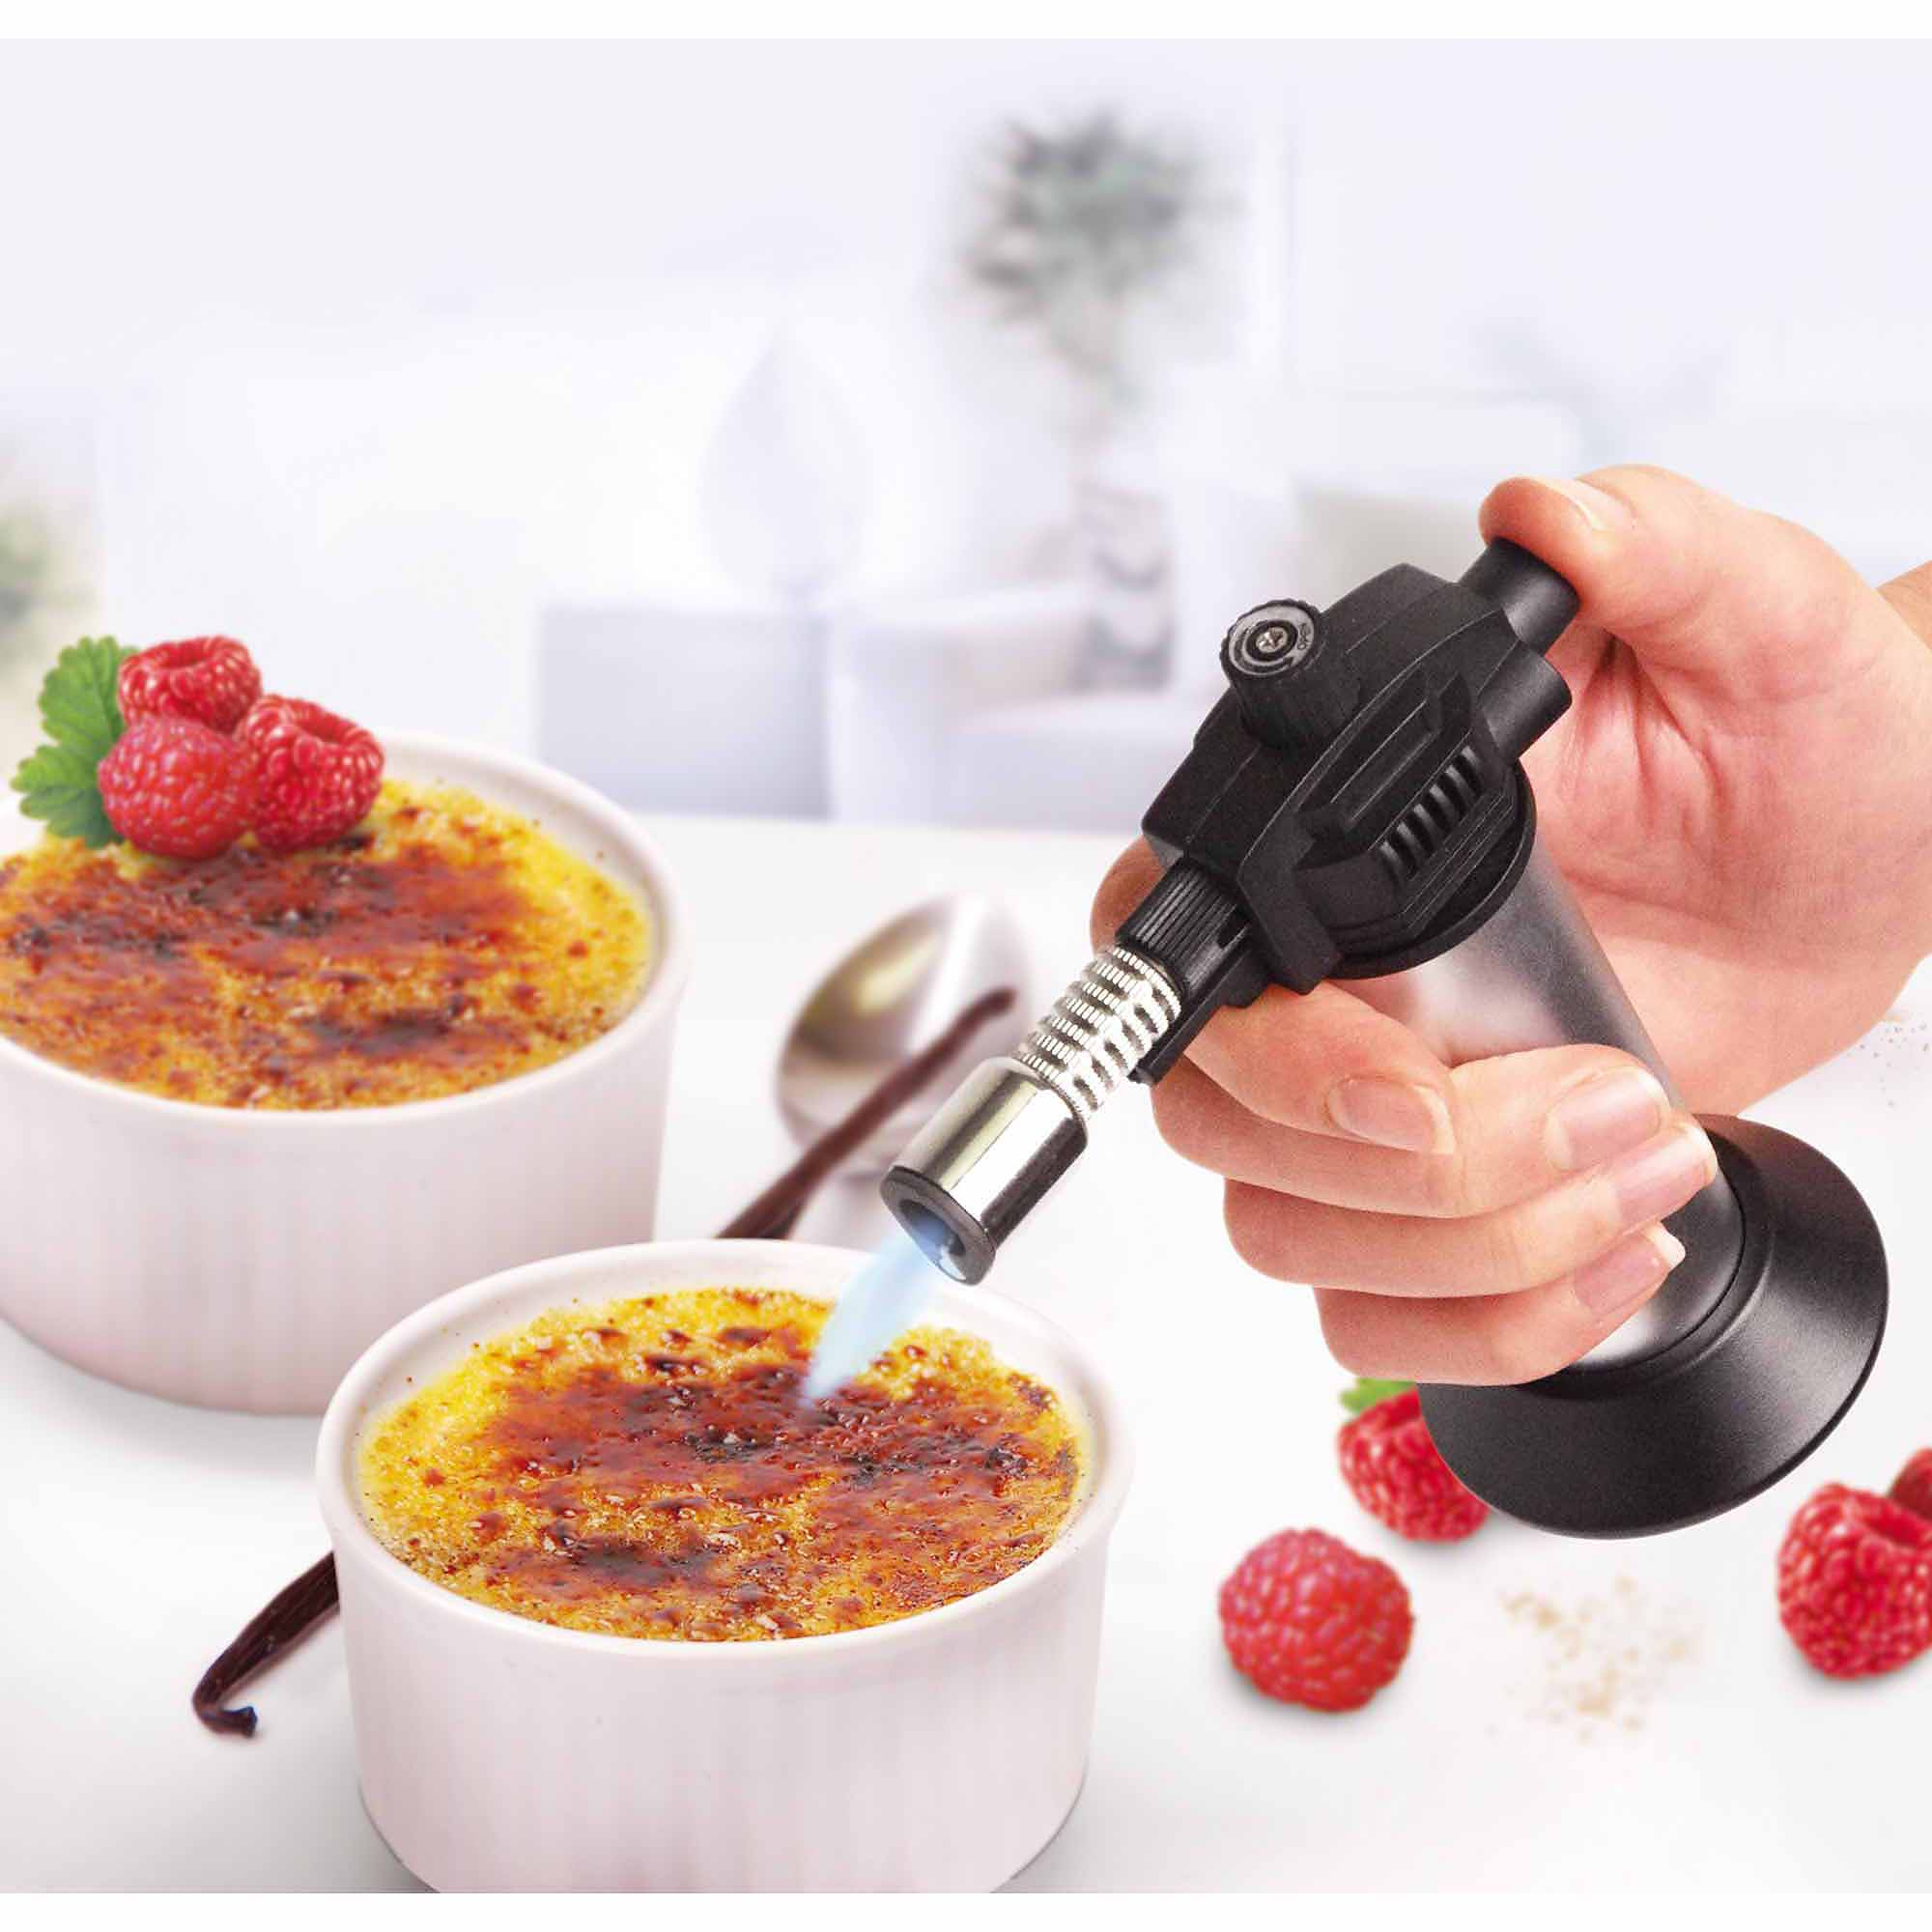 Leifheit Creme-Brulee Ramekins and Cooking Torch Set, White